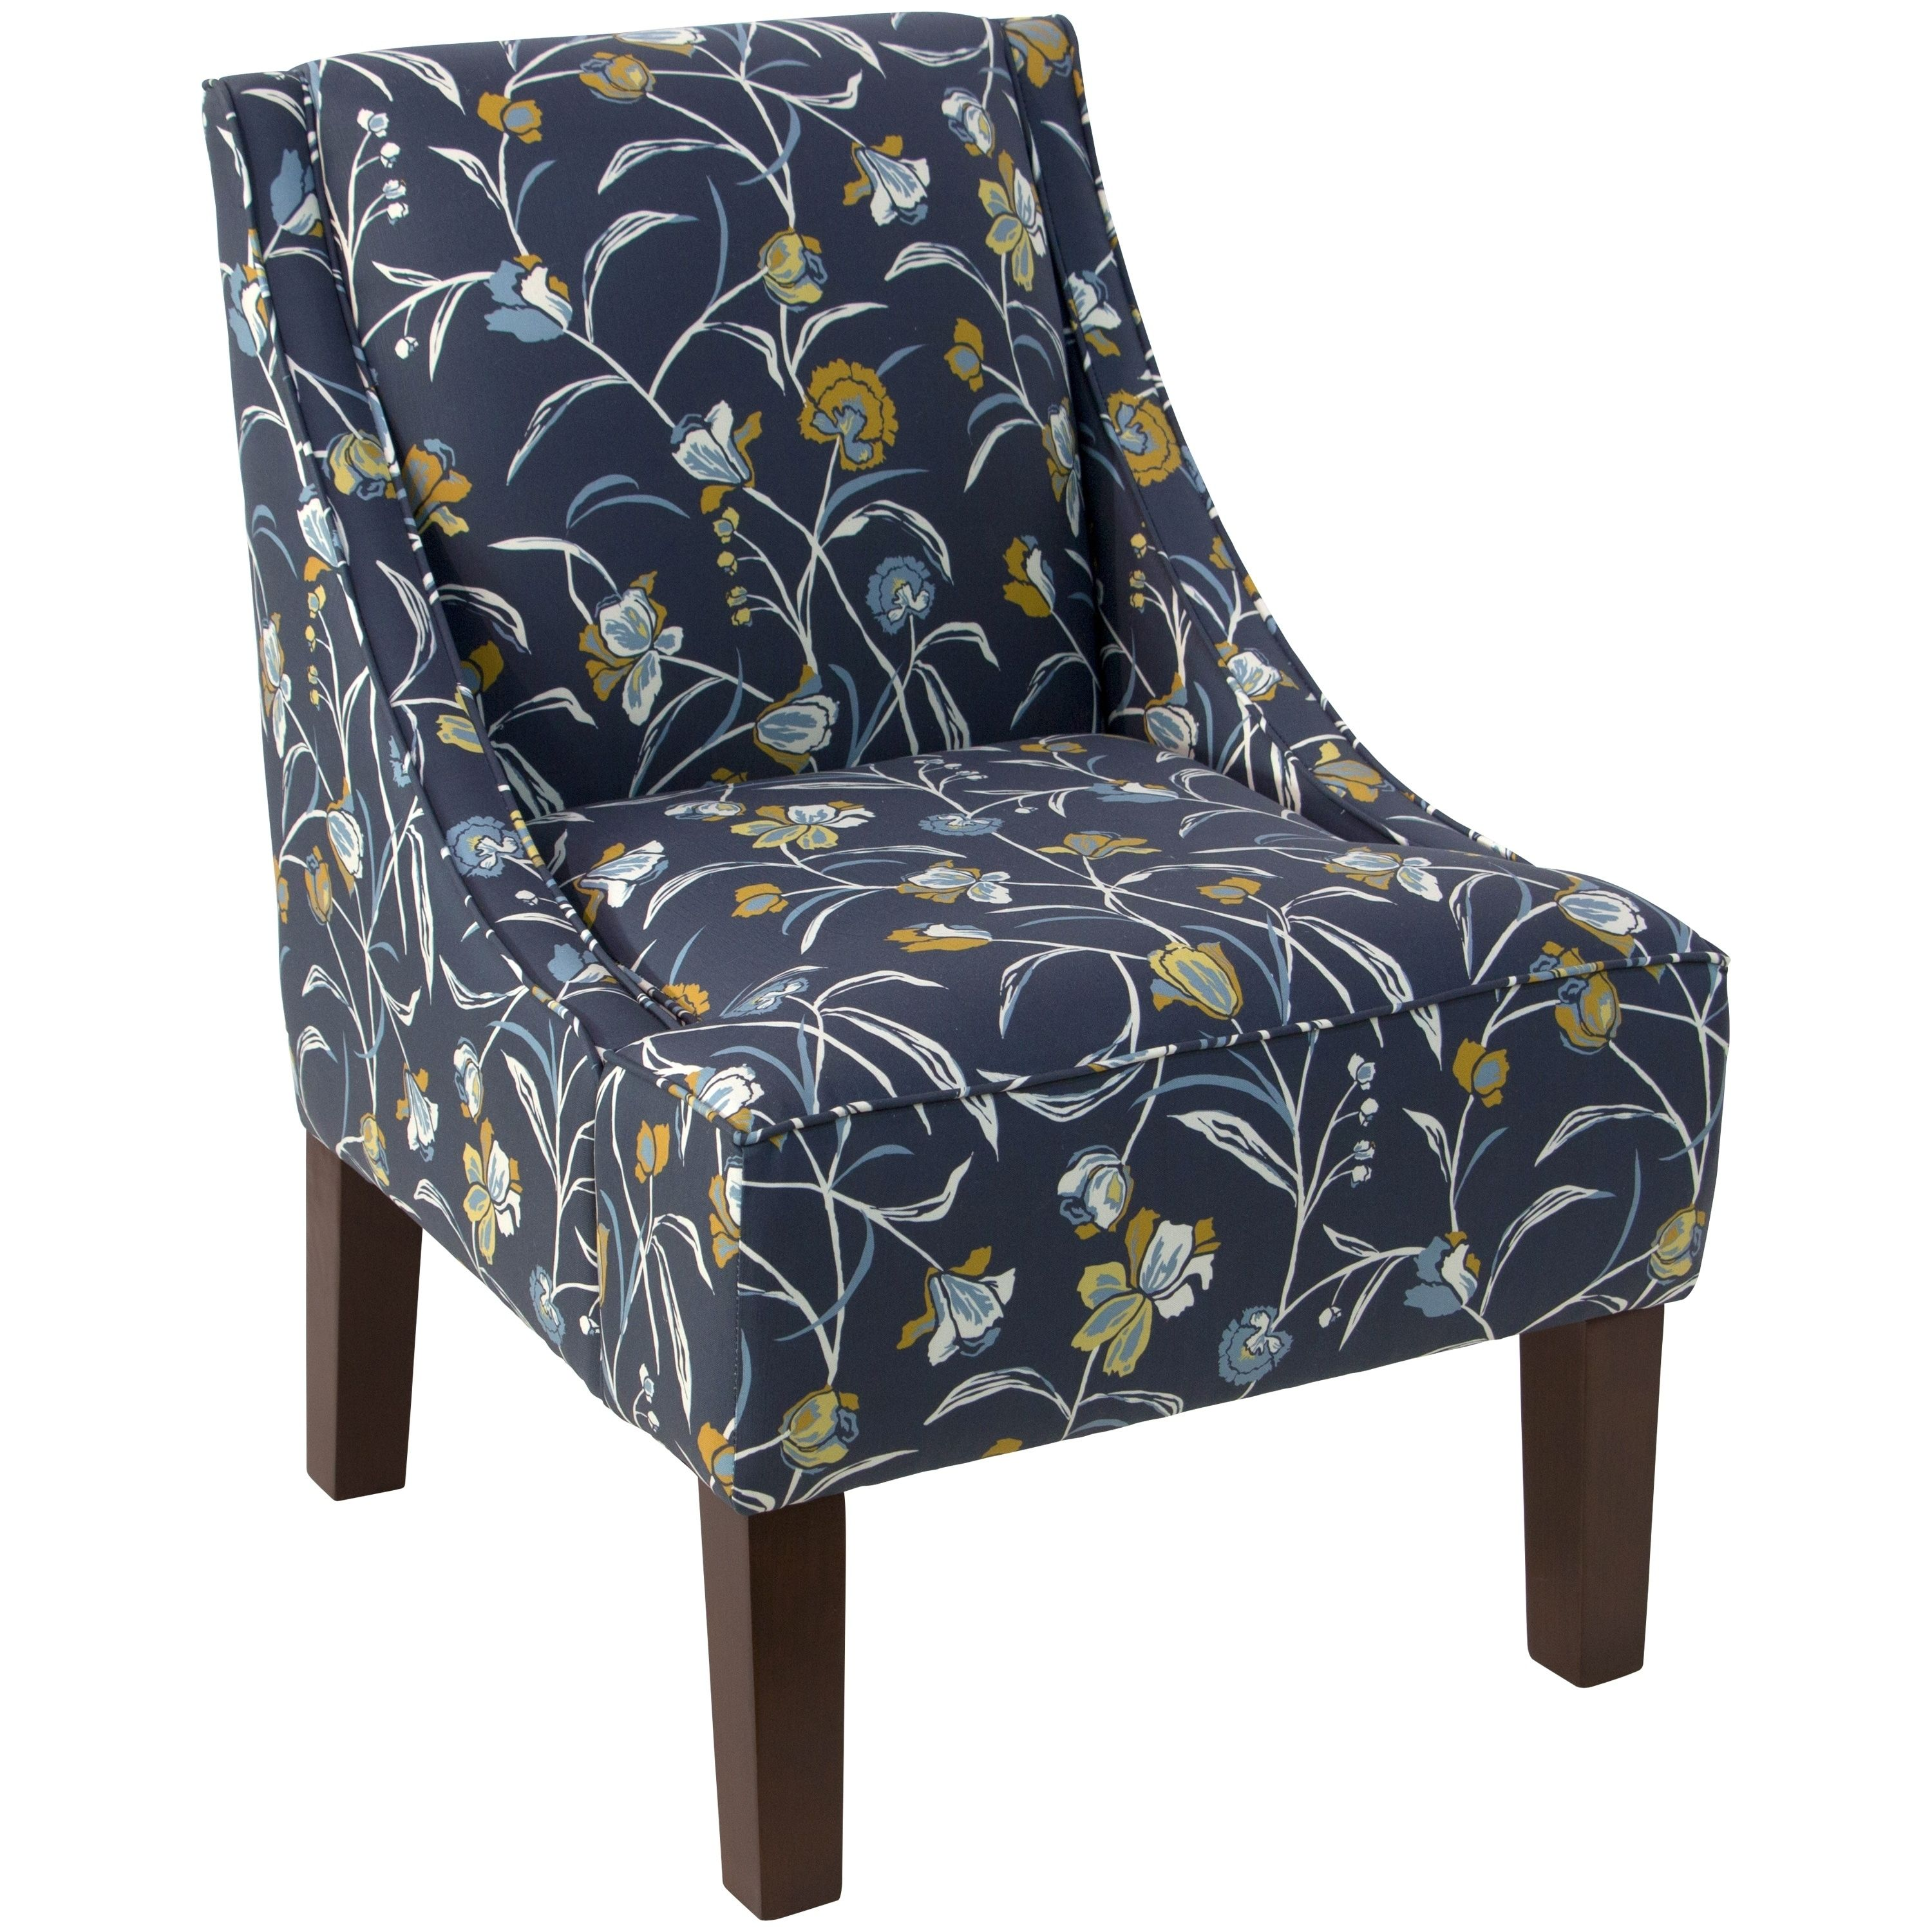 Skyline Furniture Whisp Floral Navy Ochre Fabric Upholstered Accent